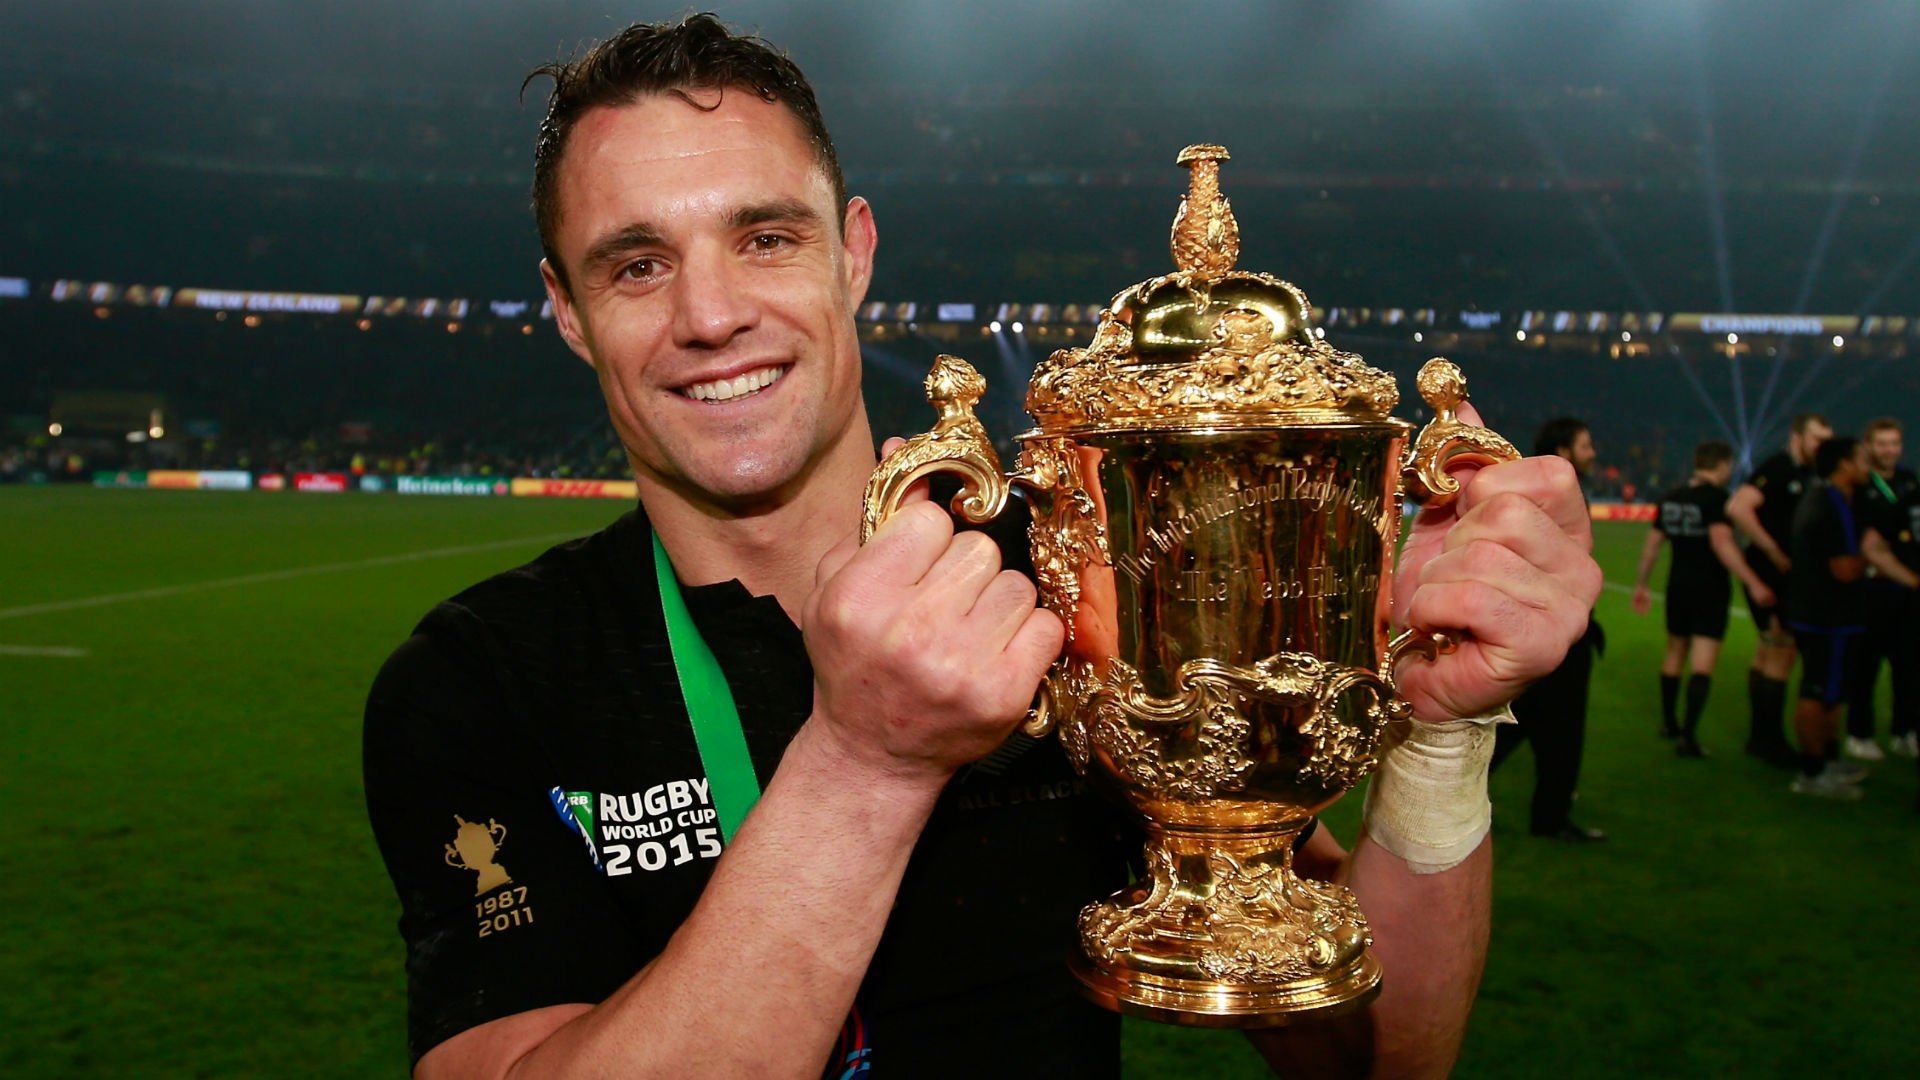 There was a wave of tributes to legendary fly-half Dan Carter after the All Blacks great announced his retirement on Saturday.